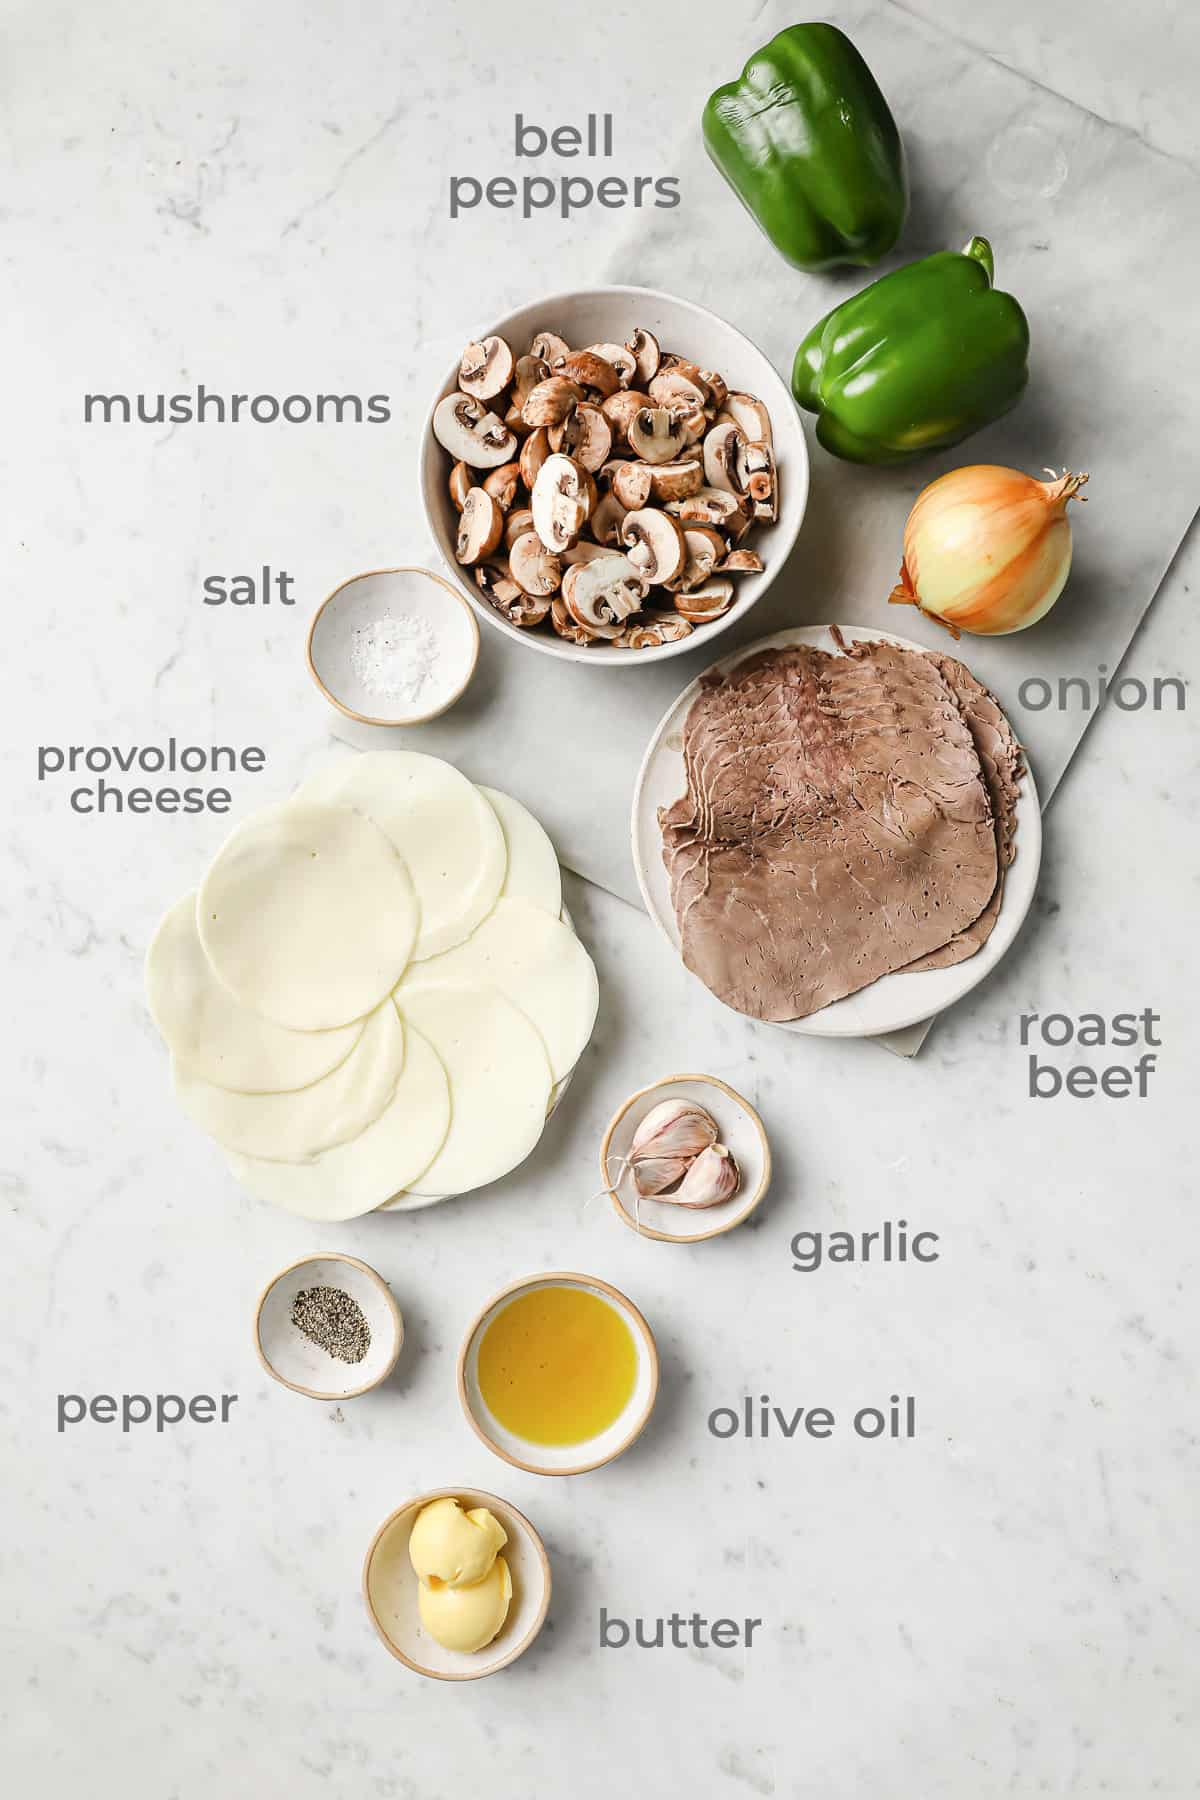 Ingredients to make philly cheesesteak stuffed peppers - roast beef, onion, mushrooms, provolone, garlic